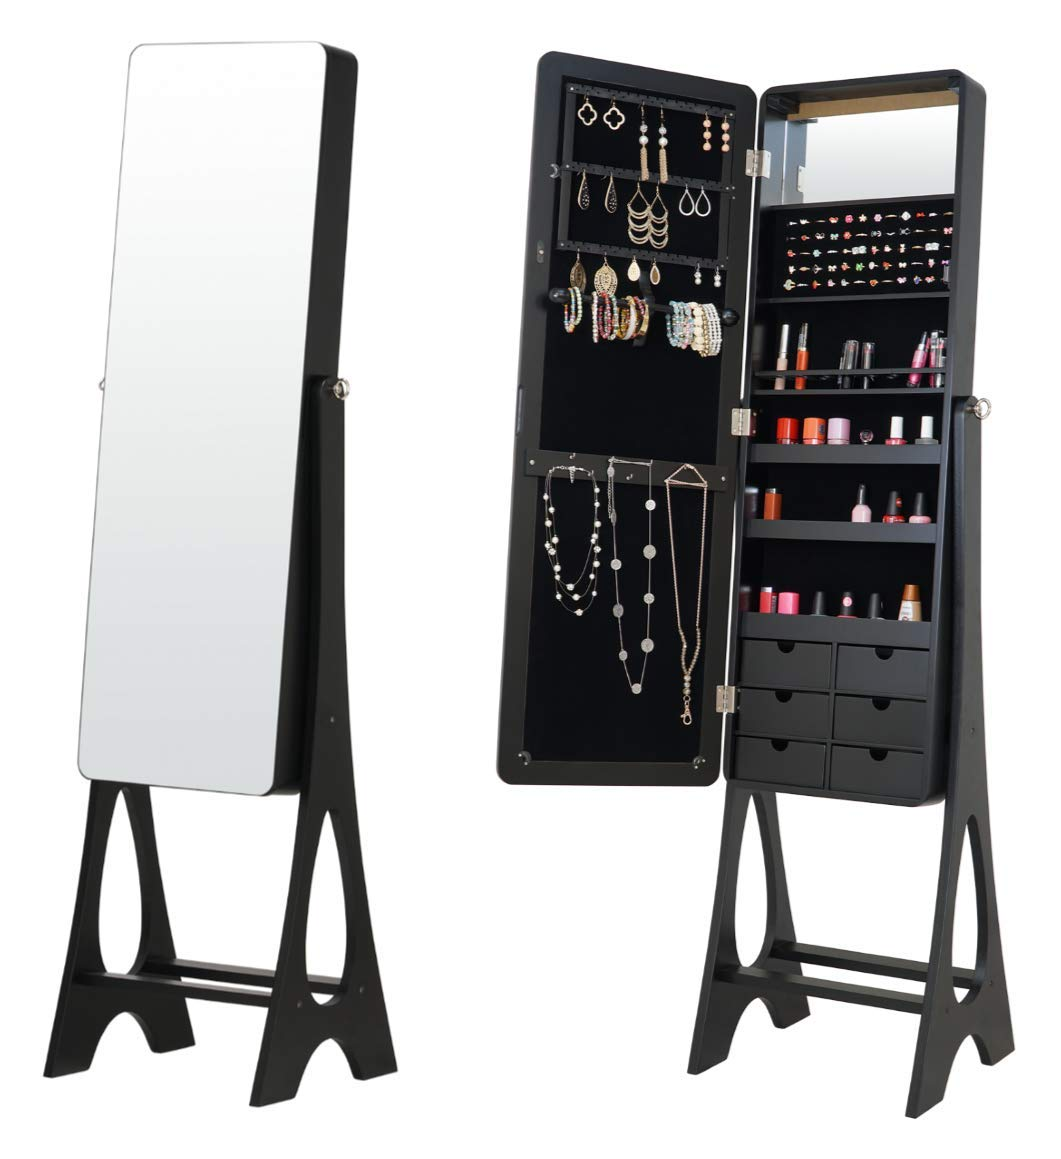 Fineboard FB-JC07-BK LED Jewelry Cabinet Organizer with Mirror and 6 Drawers, Black by Fineboard